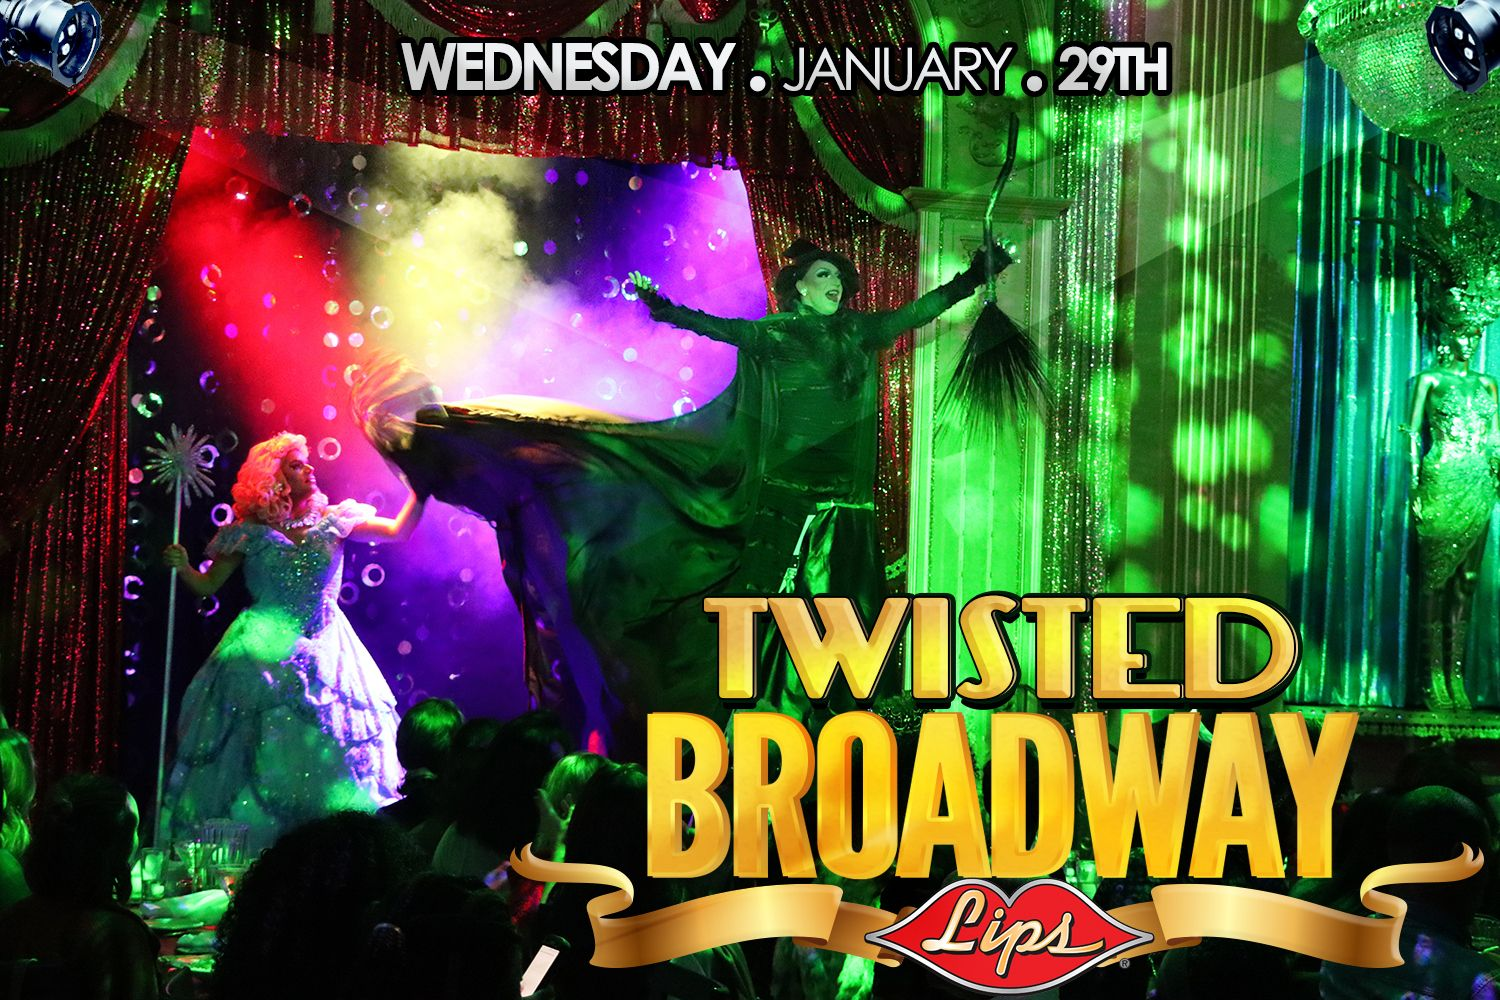 All your favorite Broadway Shows with a little TWIST! The BEST place to celebrate in Chicago! Dinner, Drinks and a Fabulous show! Call for reservations 312-815-2662 #lipschicago #chicagotheatre #chicago #cadillacpalacetheater #entertainerlife #broadway #bachelorette #drag #dragshow #dragqueen #birthday #celebration #burlesque #instadrag #rpdr #rupaul #rupaulsdragrace #instagay #burlesqueshow #queen